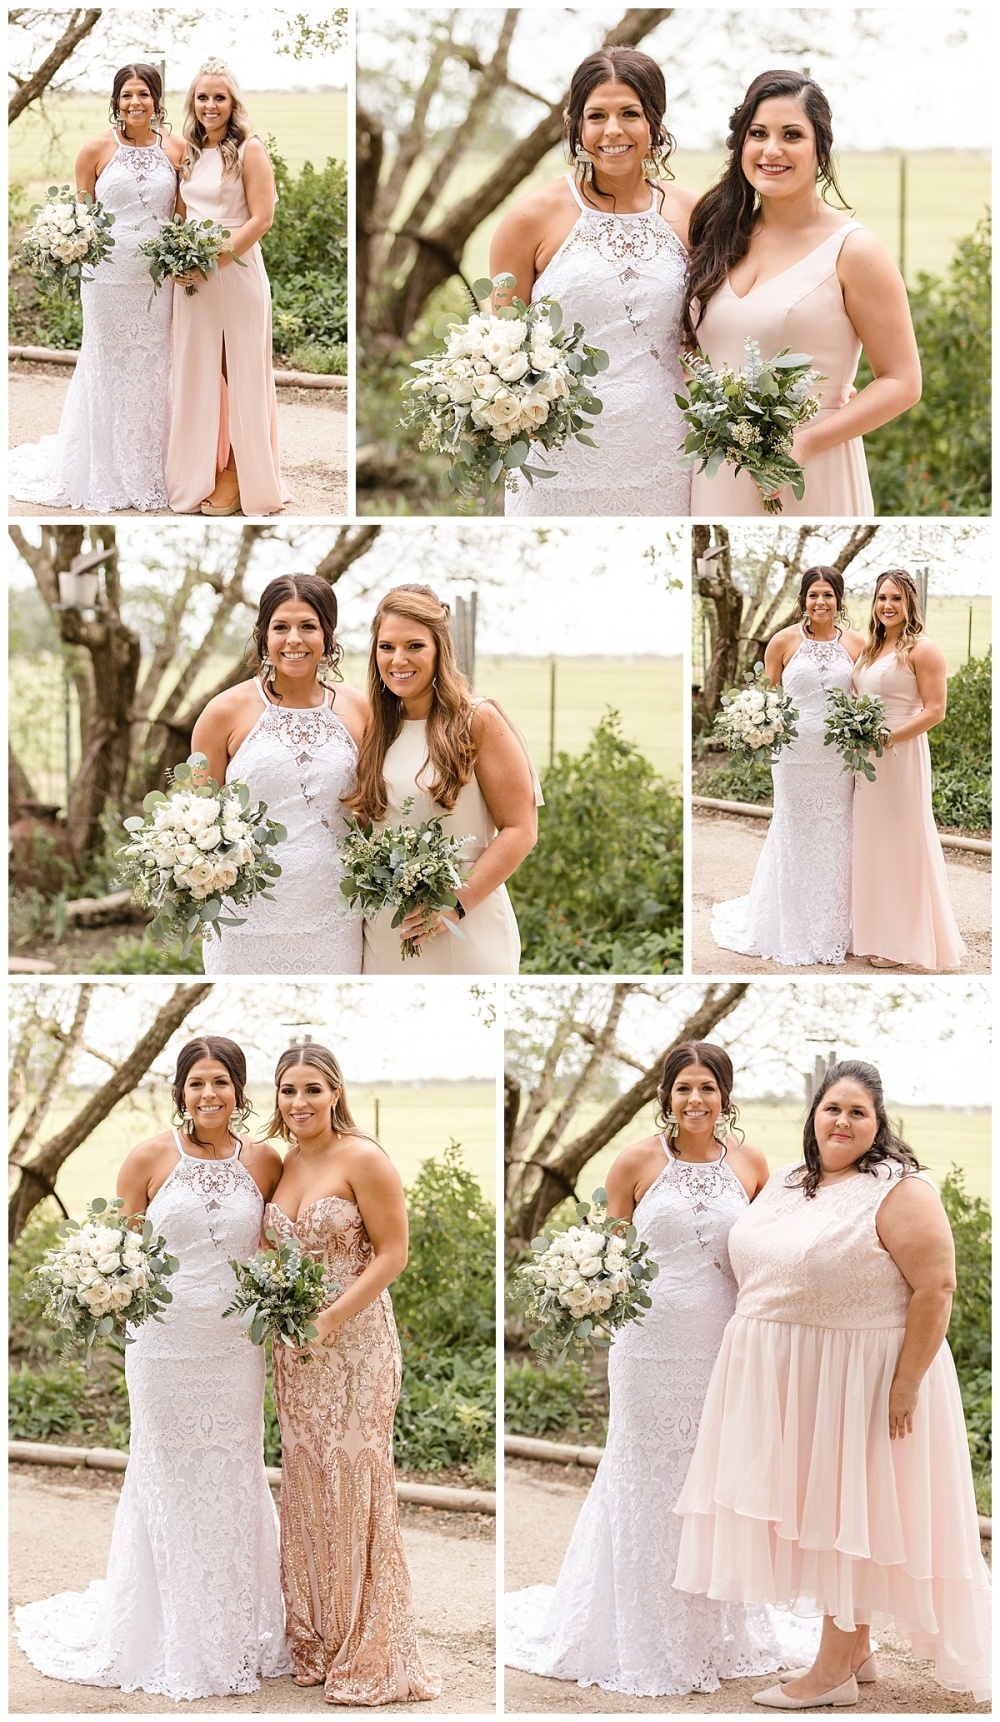 South-Texas-Wedding-Photographer-Rose-Gold-and-Navy-Theme-LaVernia-Bride-Groom-Carly-Barton-Photography_0002